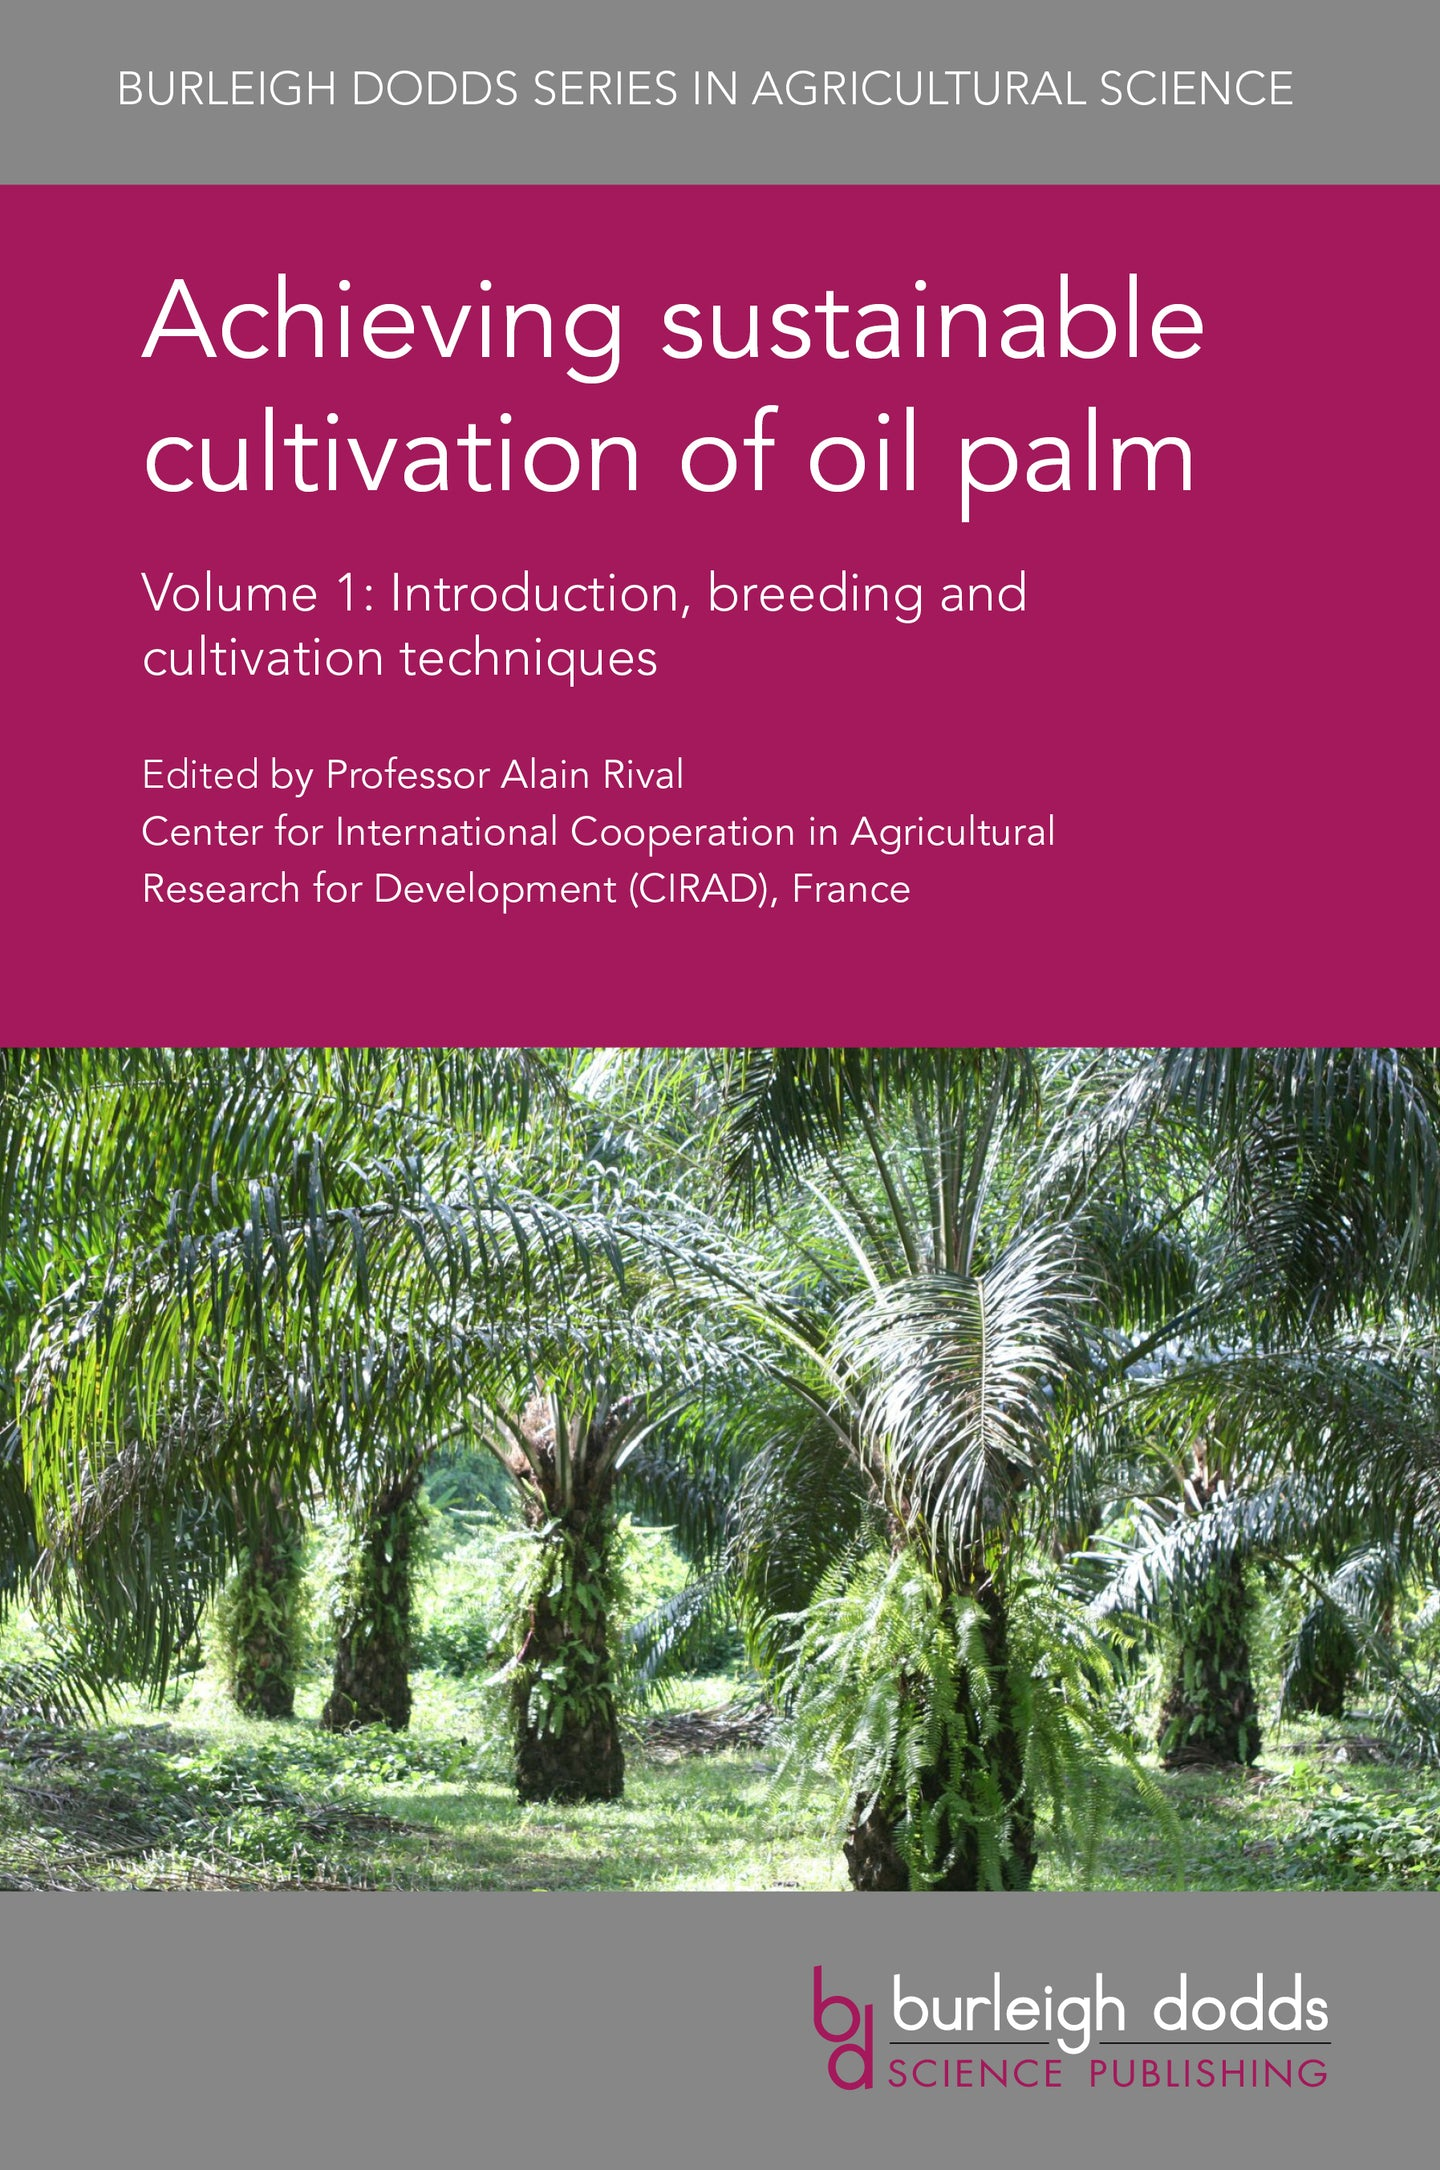 x Achieving sustainable cultivation of oil palm. Volume 1